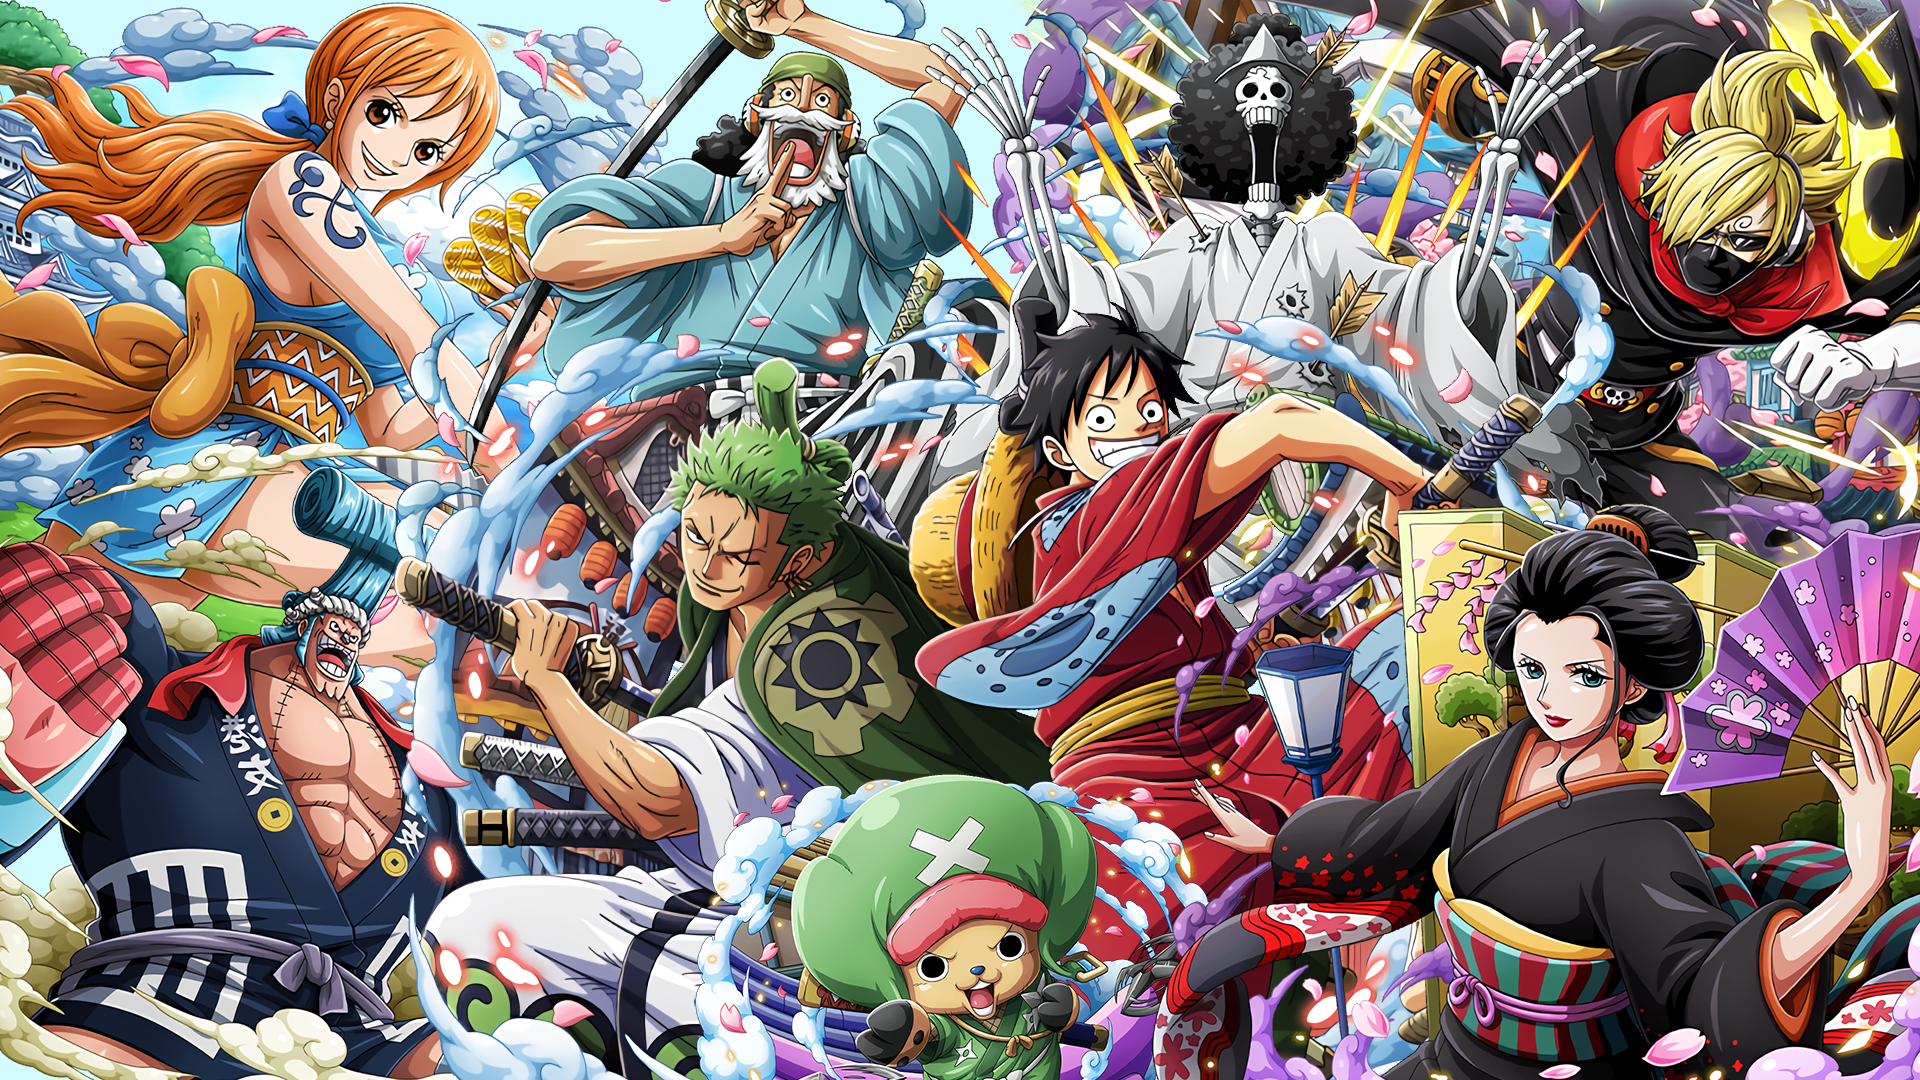 Download wallpaper zoro wano hd cikimm com stay tuned to get more information of one piece 411 roronoa zoro hd wallpapers and background. One Piece Wano Wallpapers - Wallpaper Cave